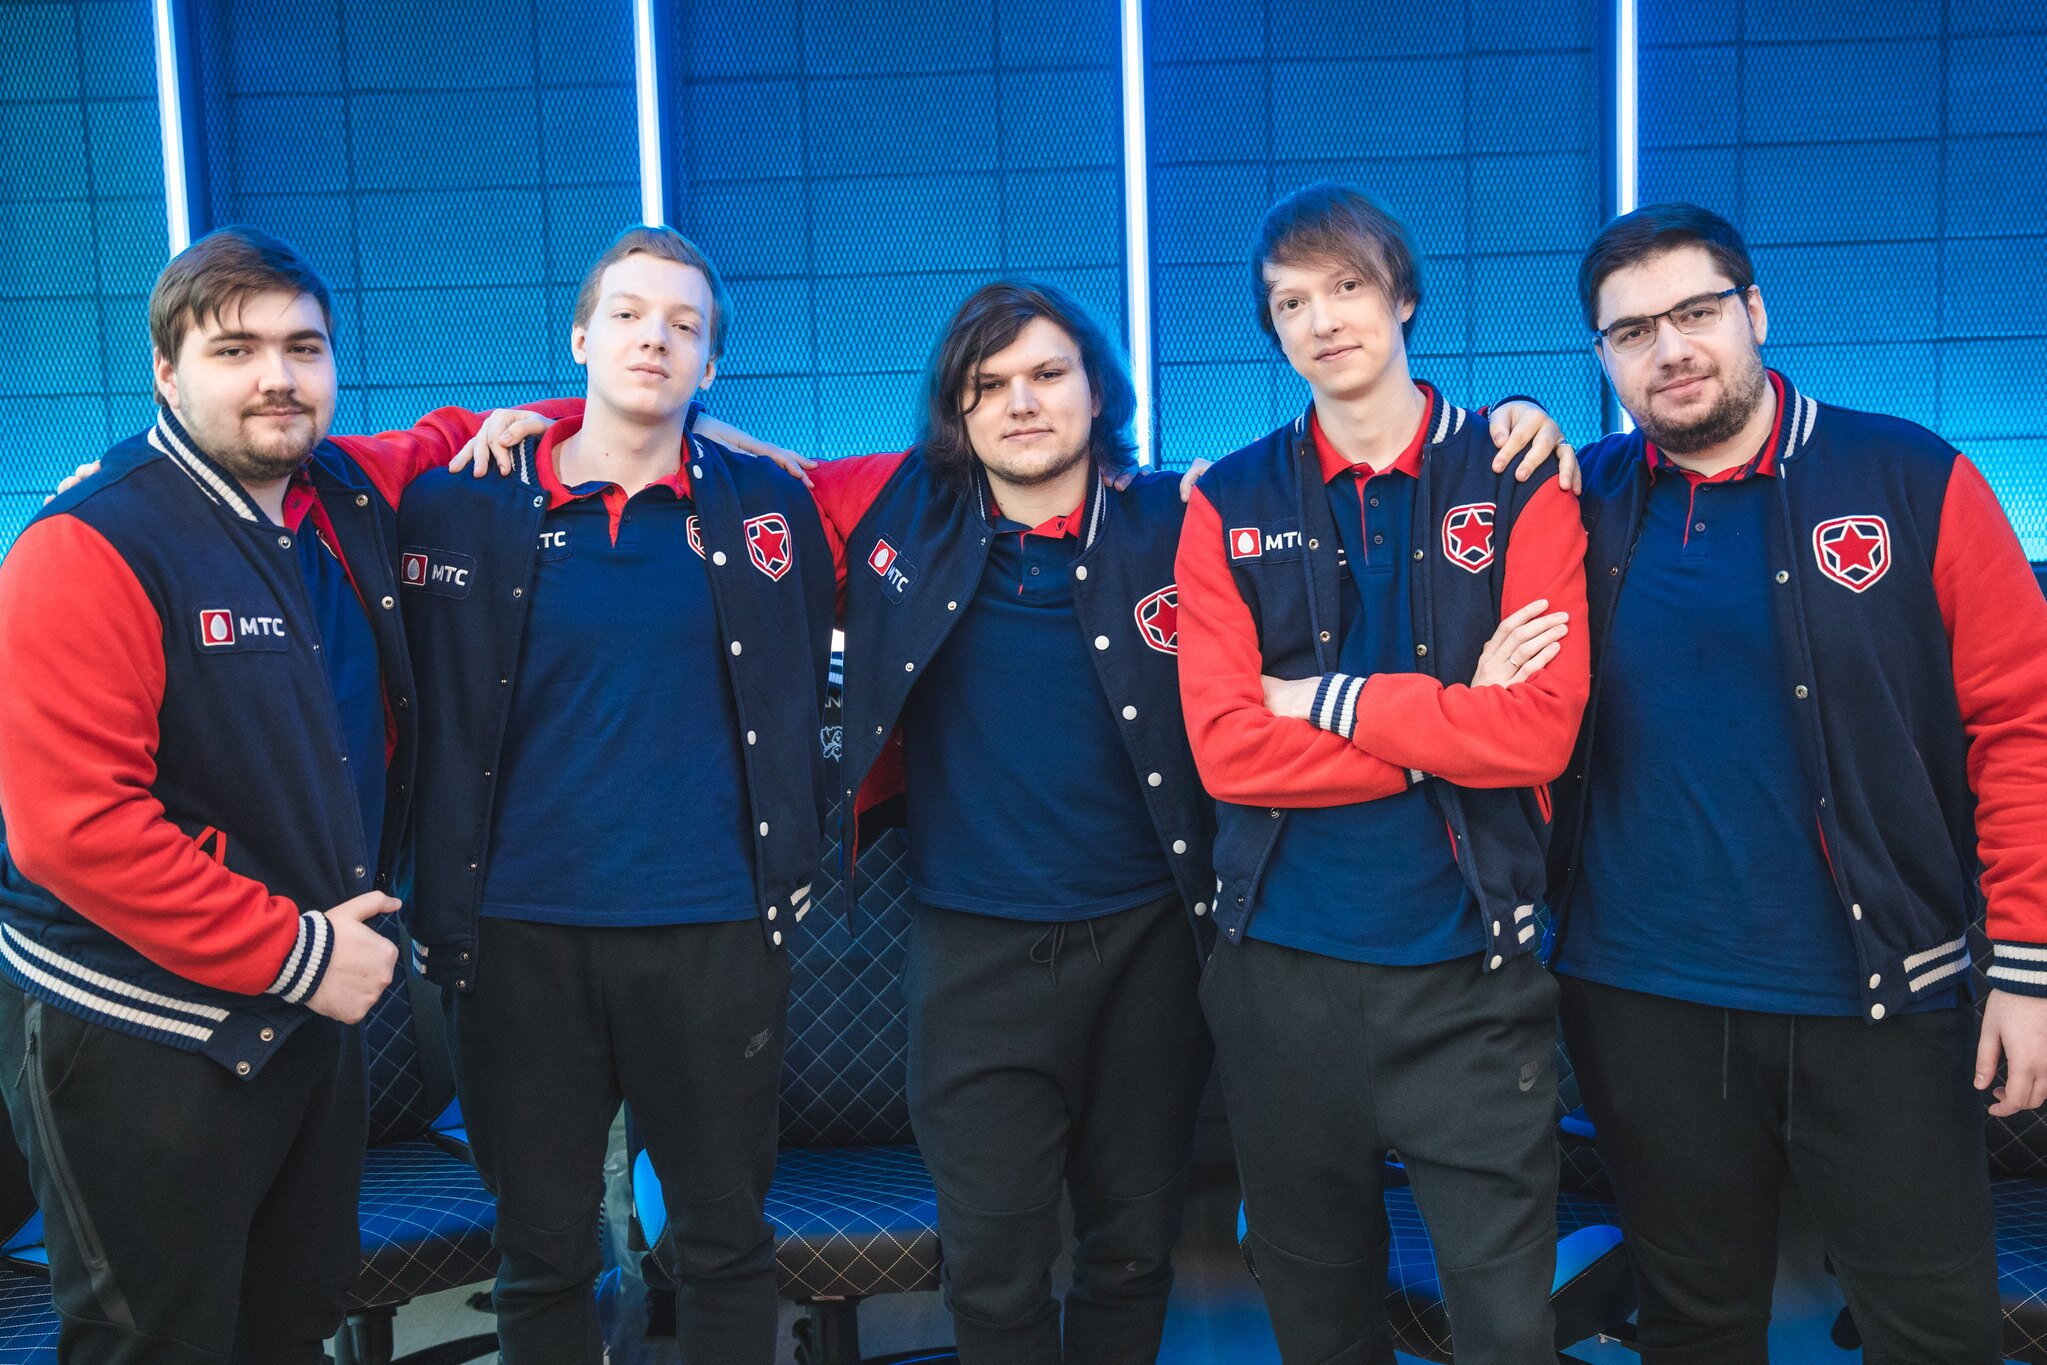 Gambit at Worlds in 2018